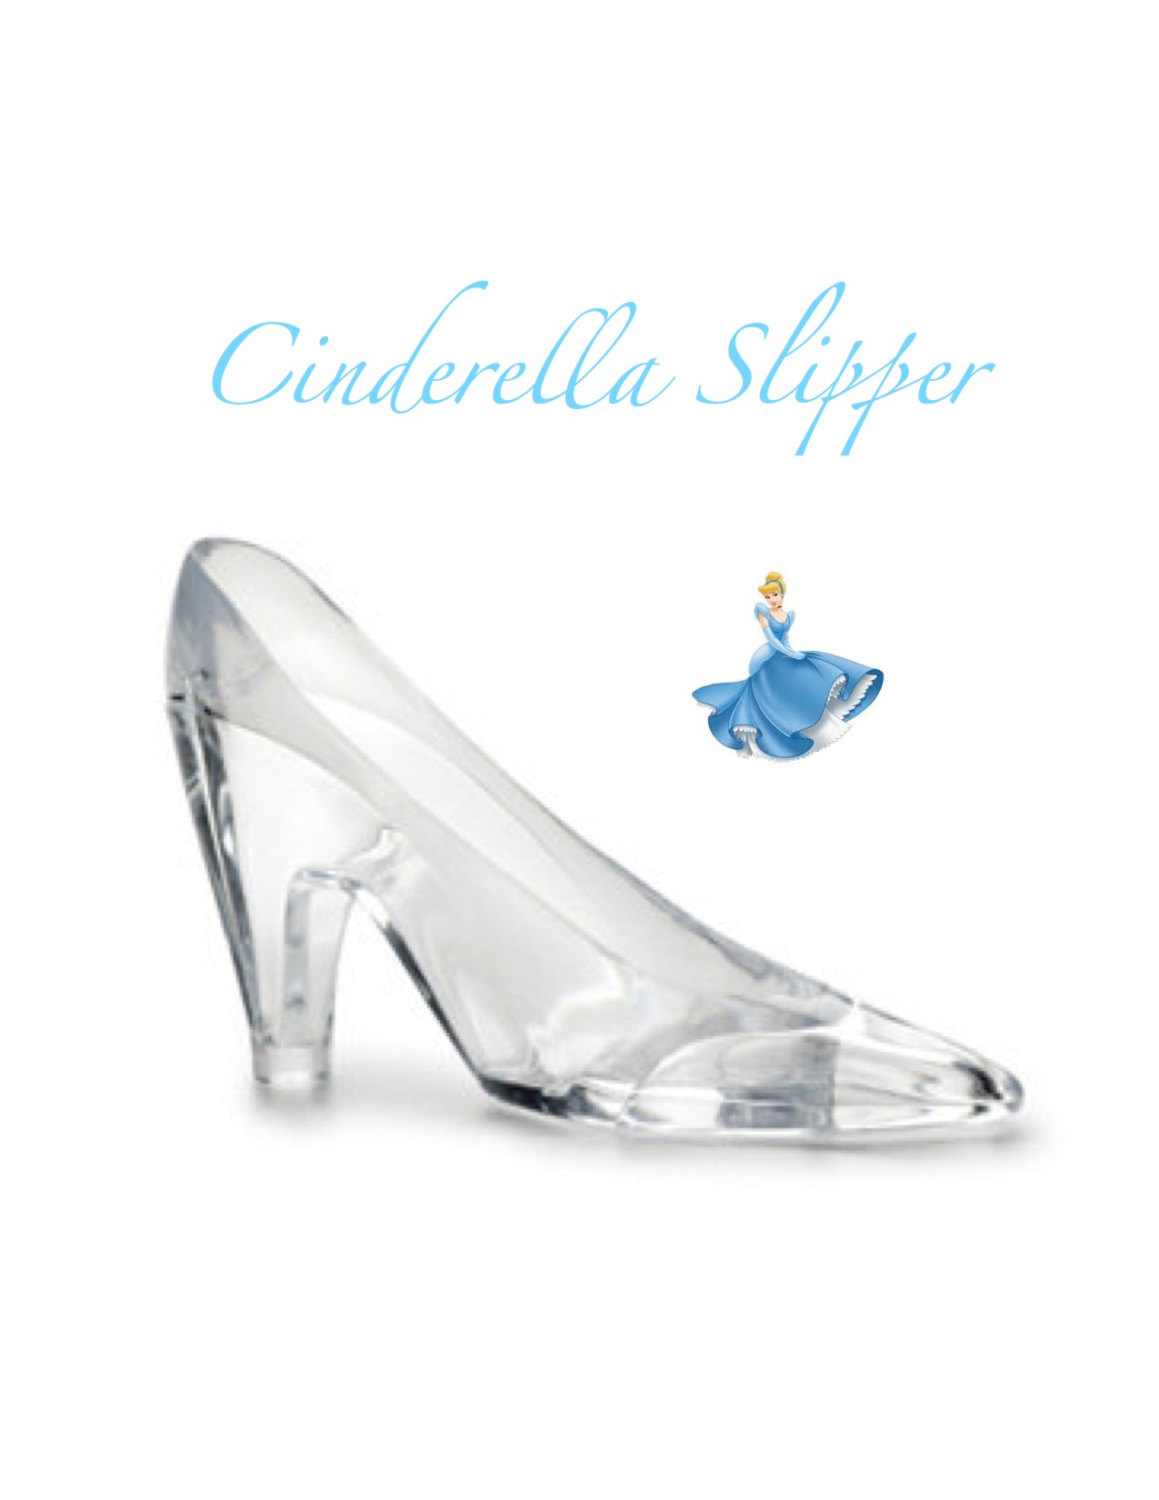 Bride clipart cinderella shoe One Slipper Glass Cake Large